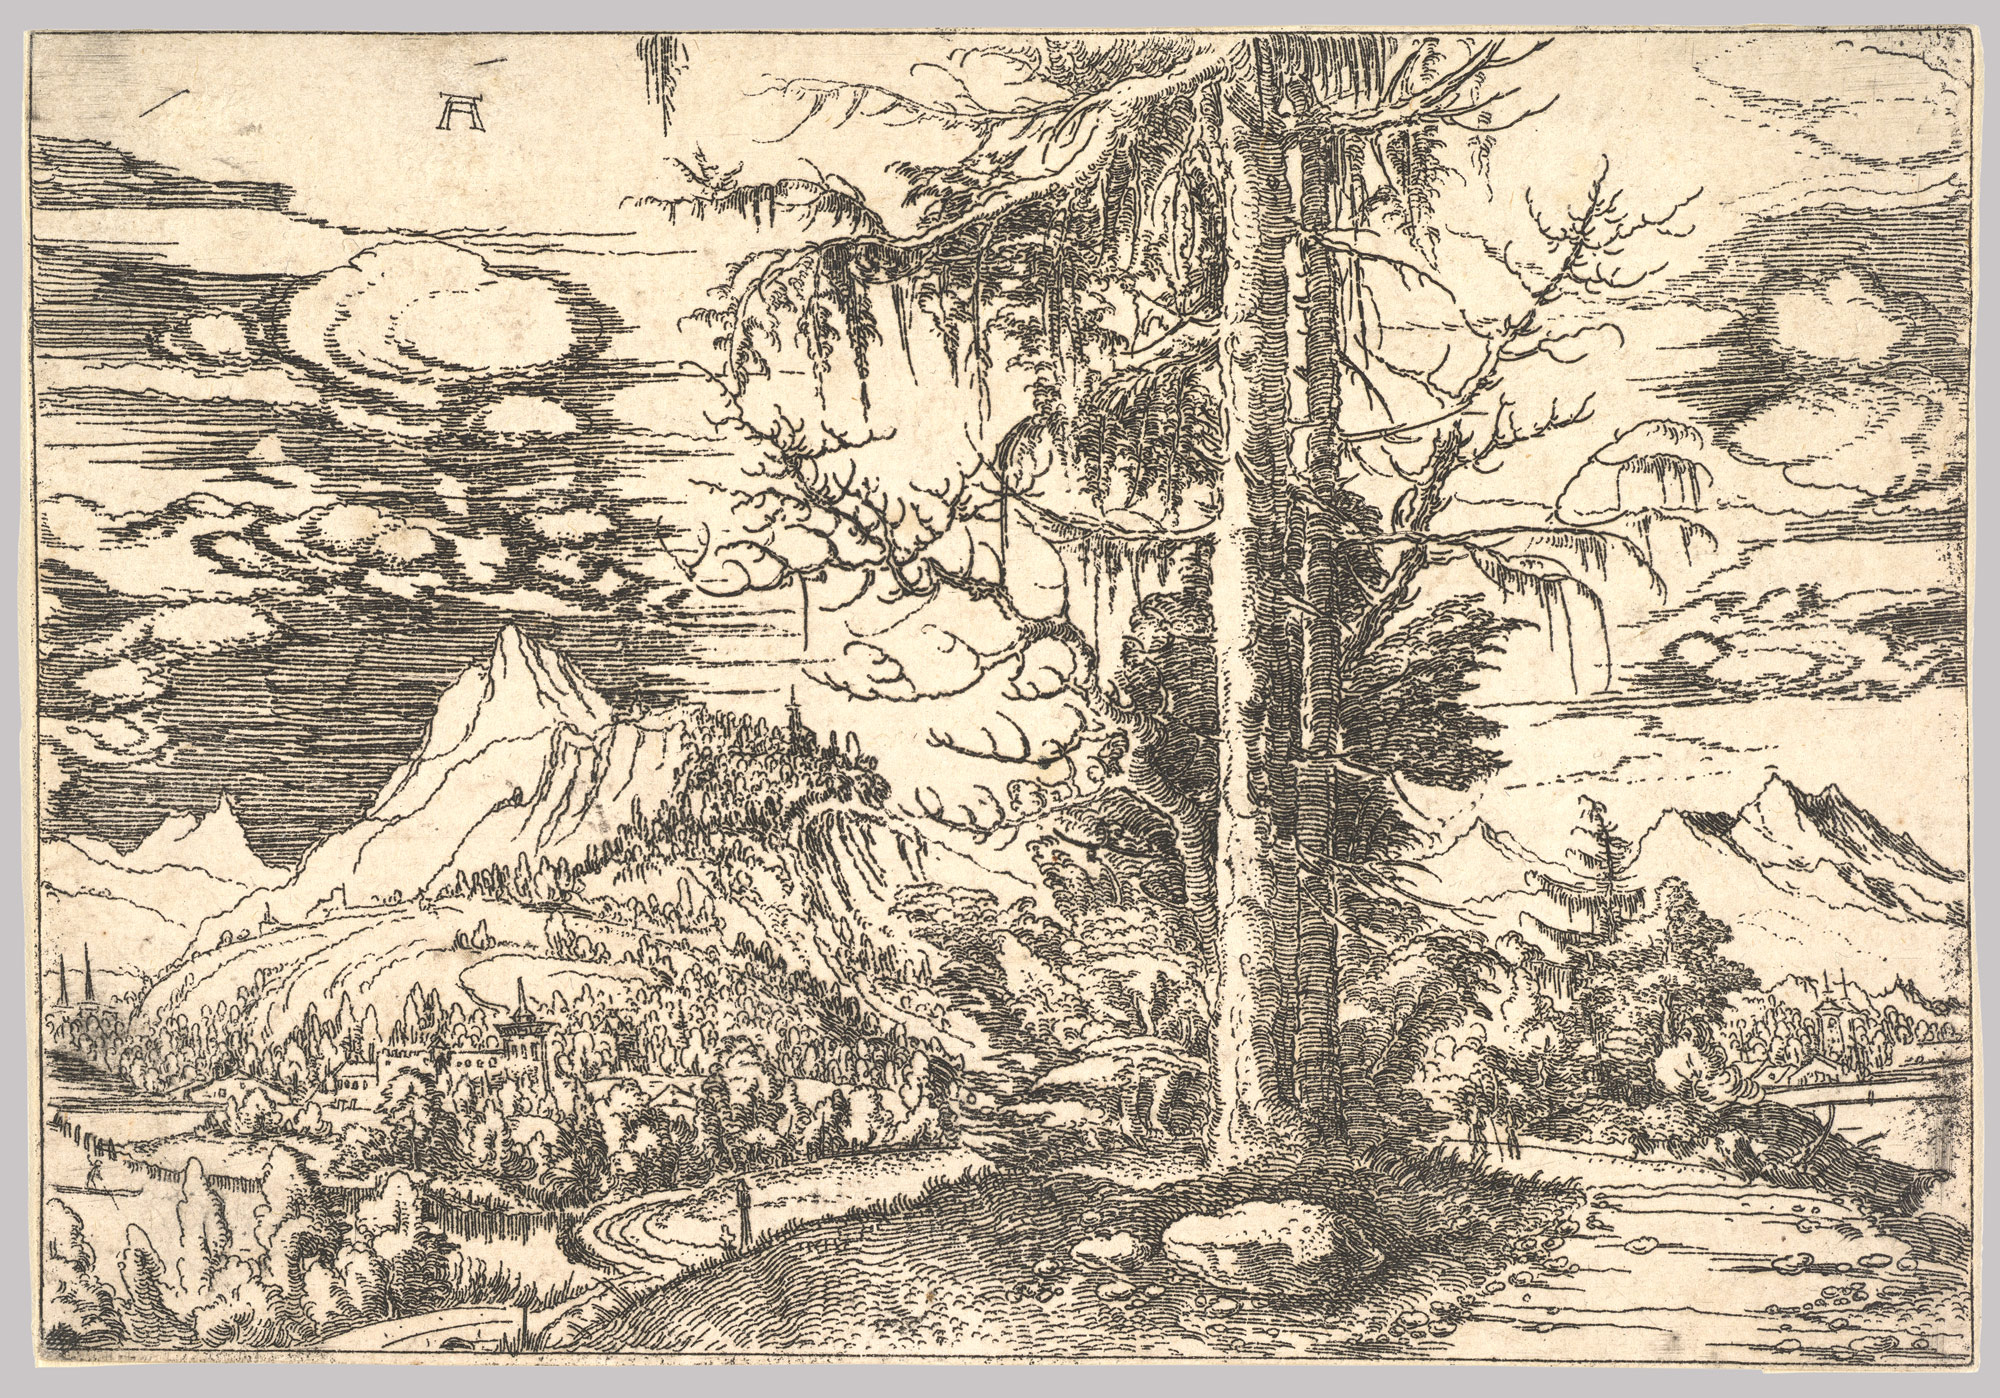 Landscape with a Double Spruce in the Foreground